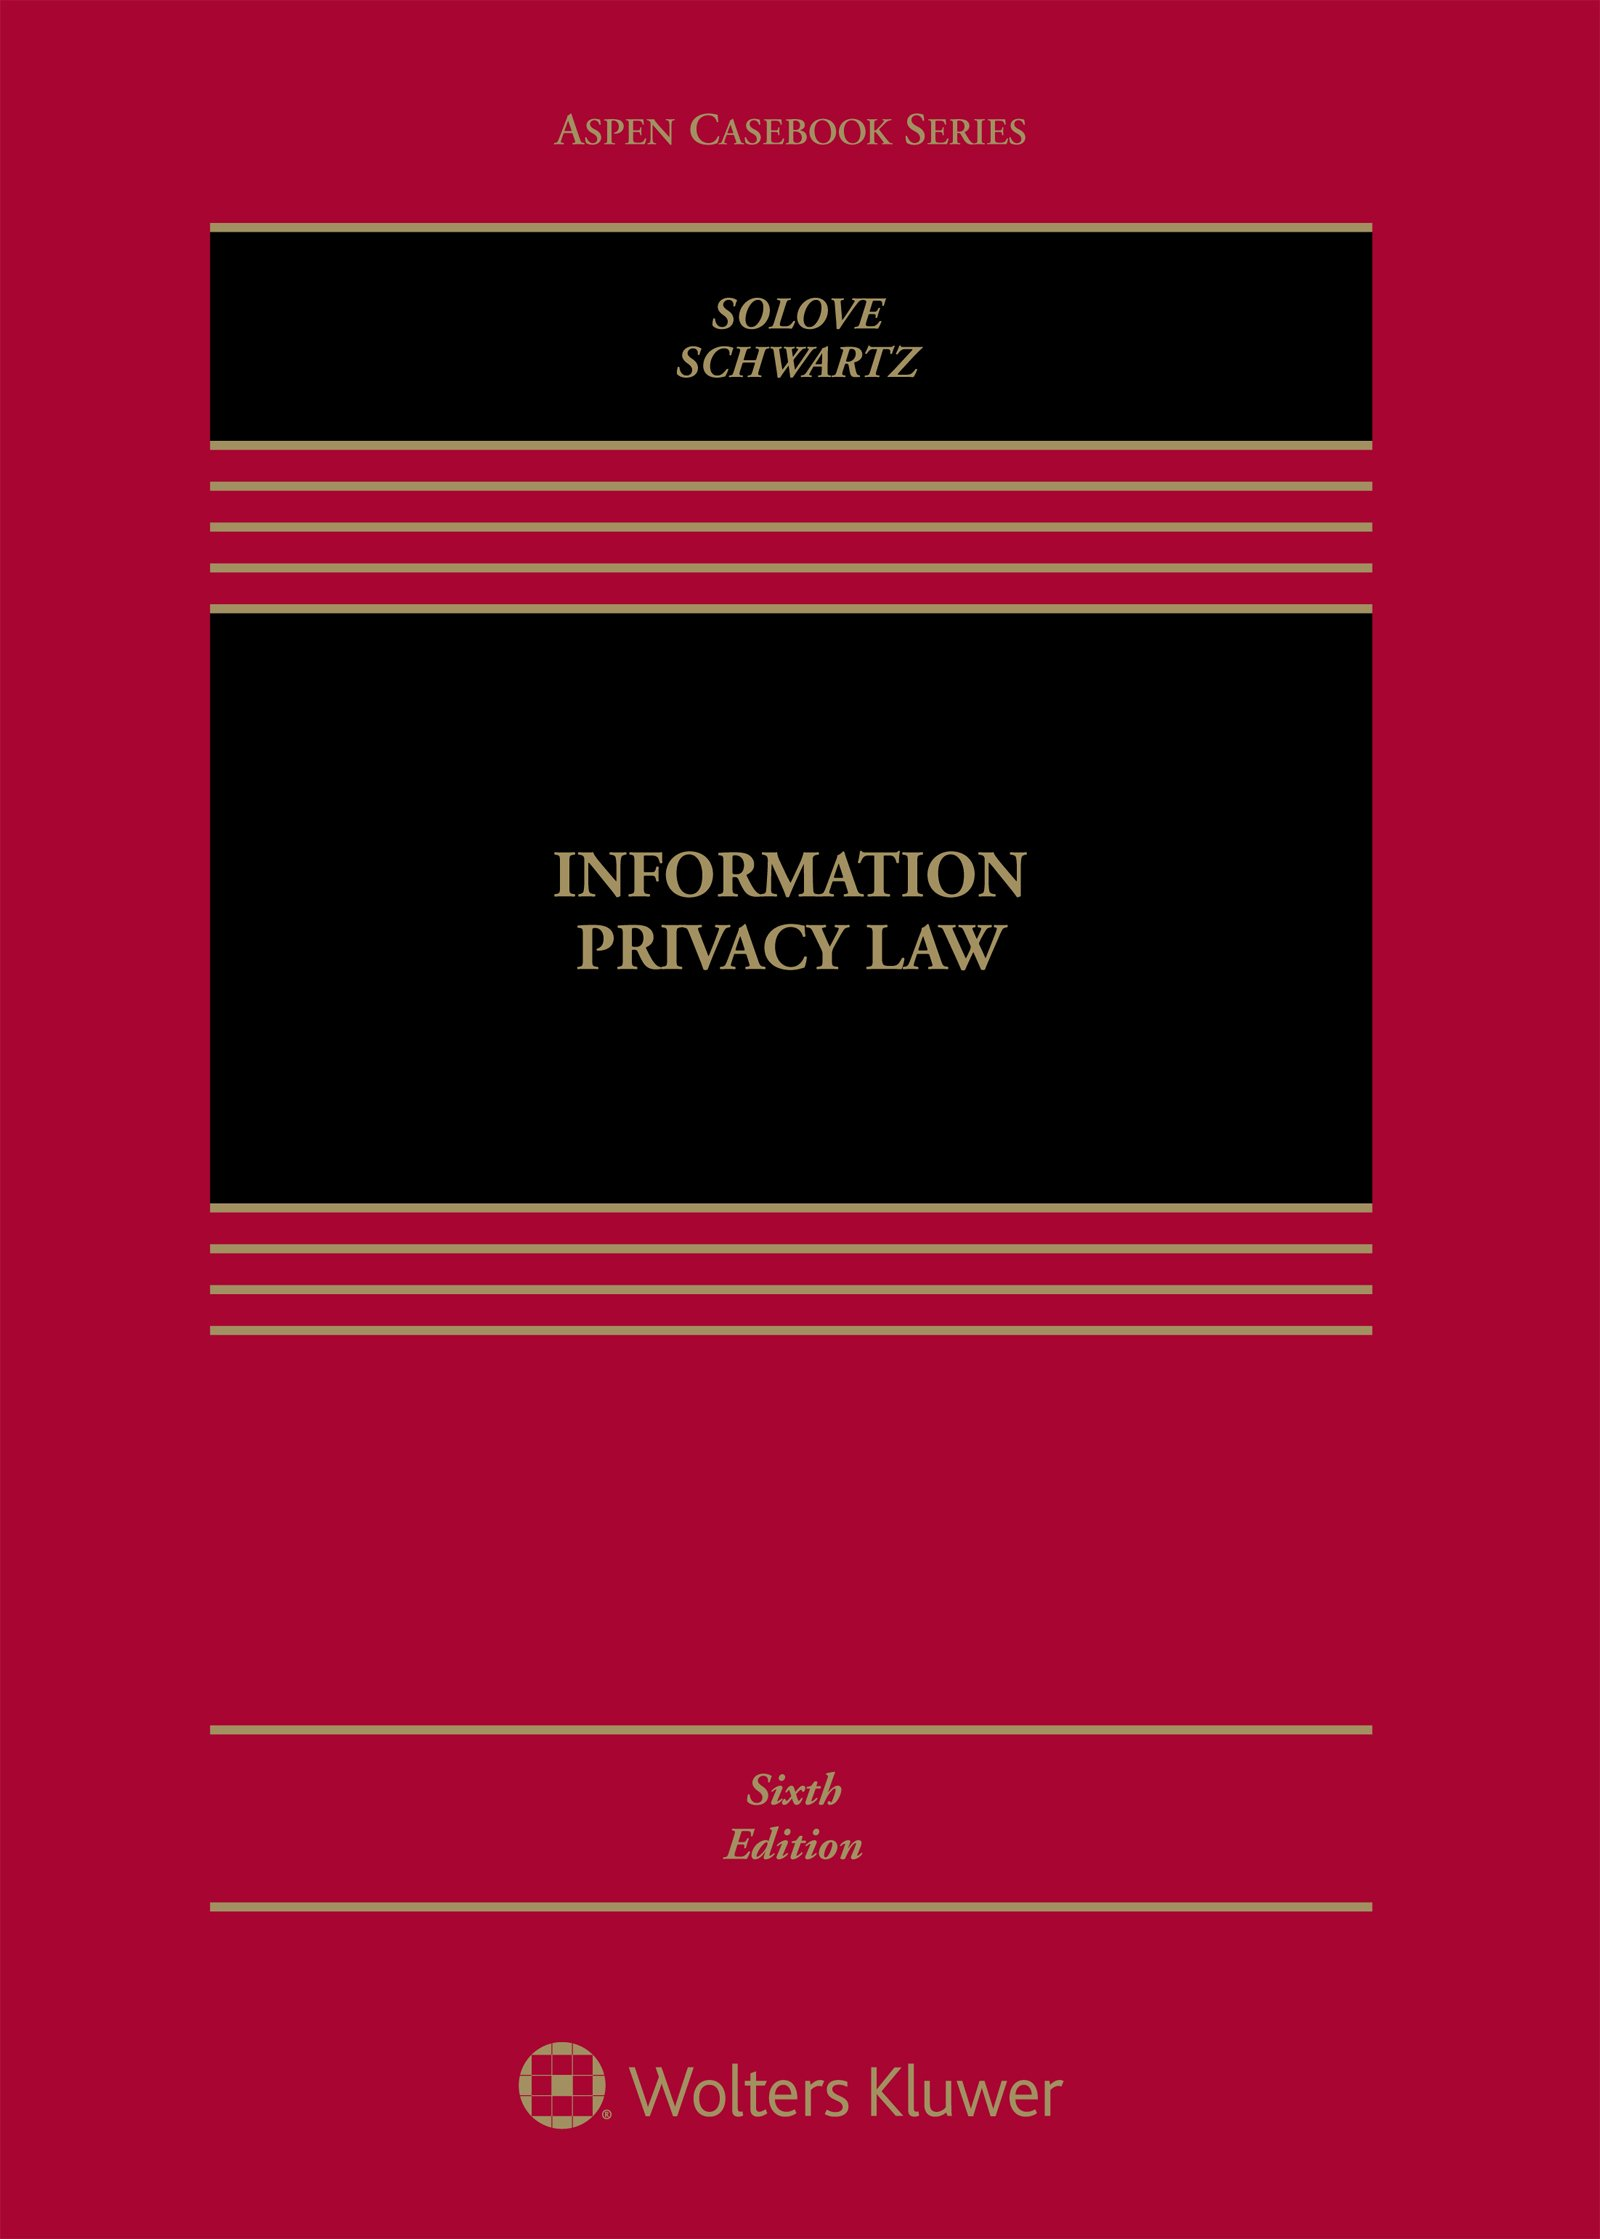 Information Privacy Law (Aspen Casebook) by Wolters Kluwer